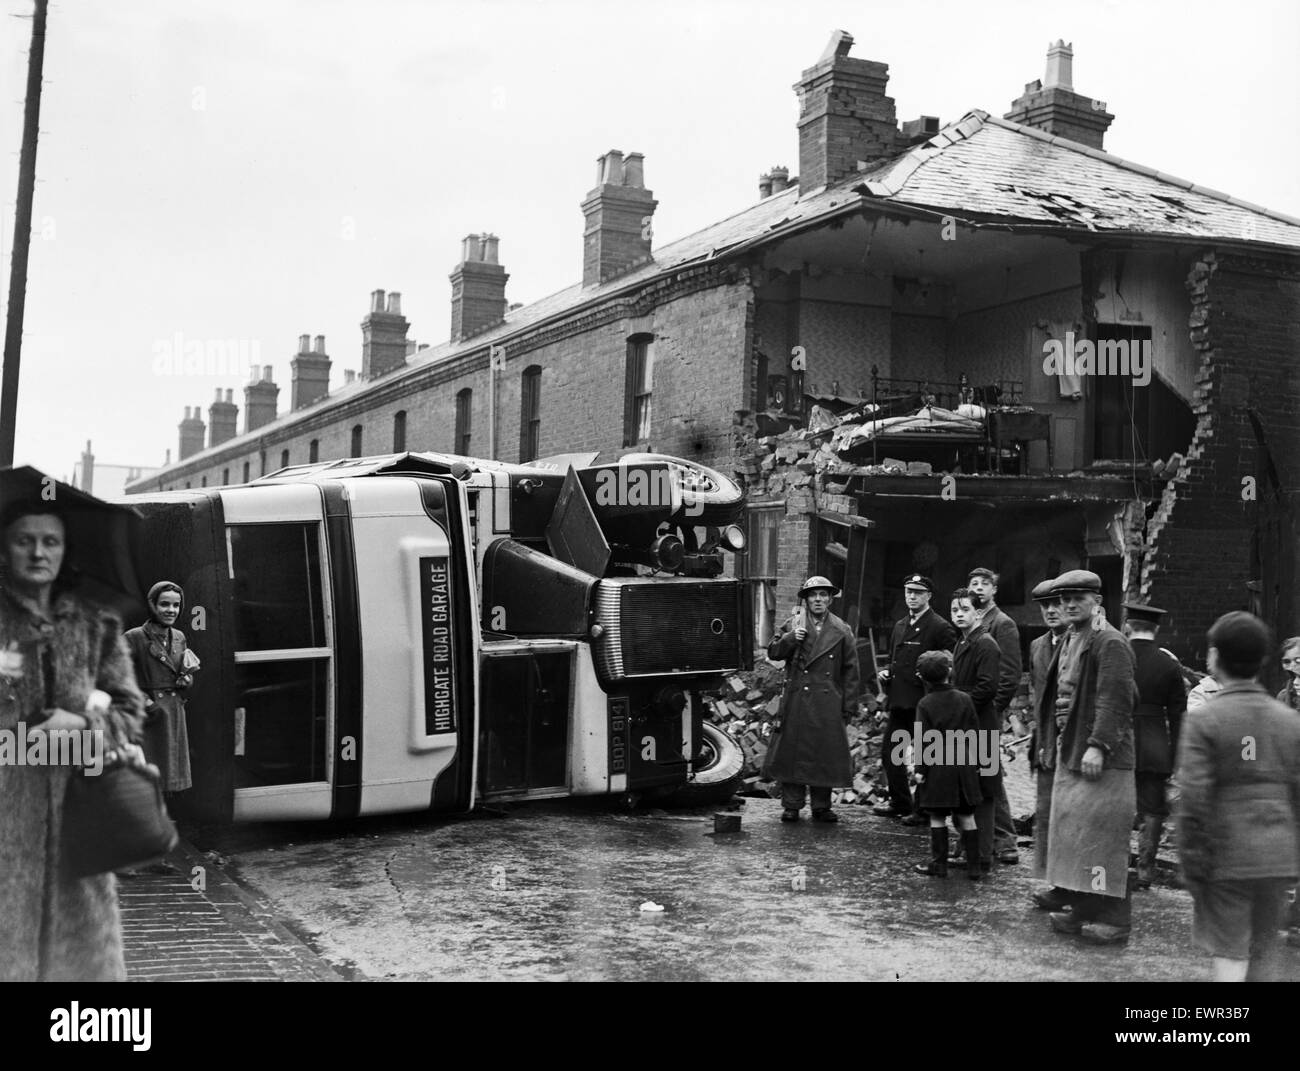 Birmingham Blitz  during the Second World War. A bus over turned in Sparbrook following an air raid. 20th November - Stock Image